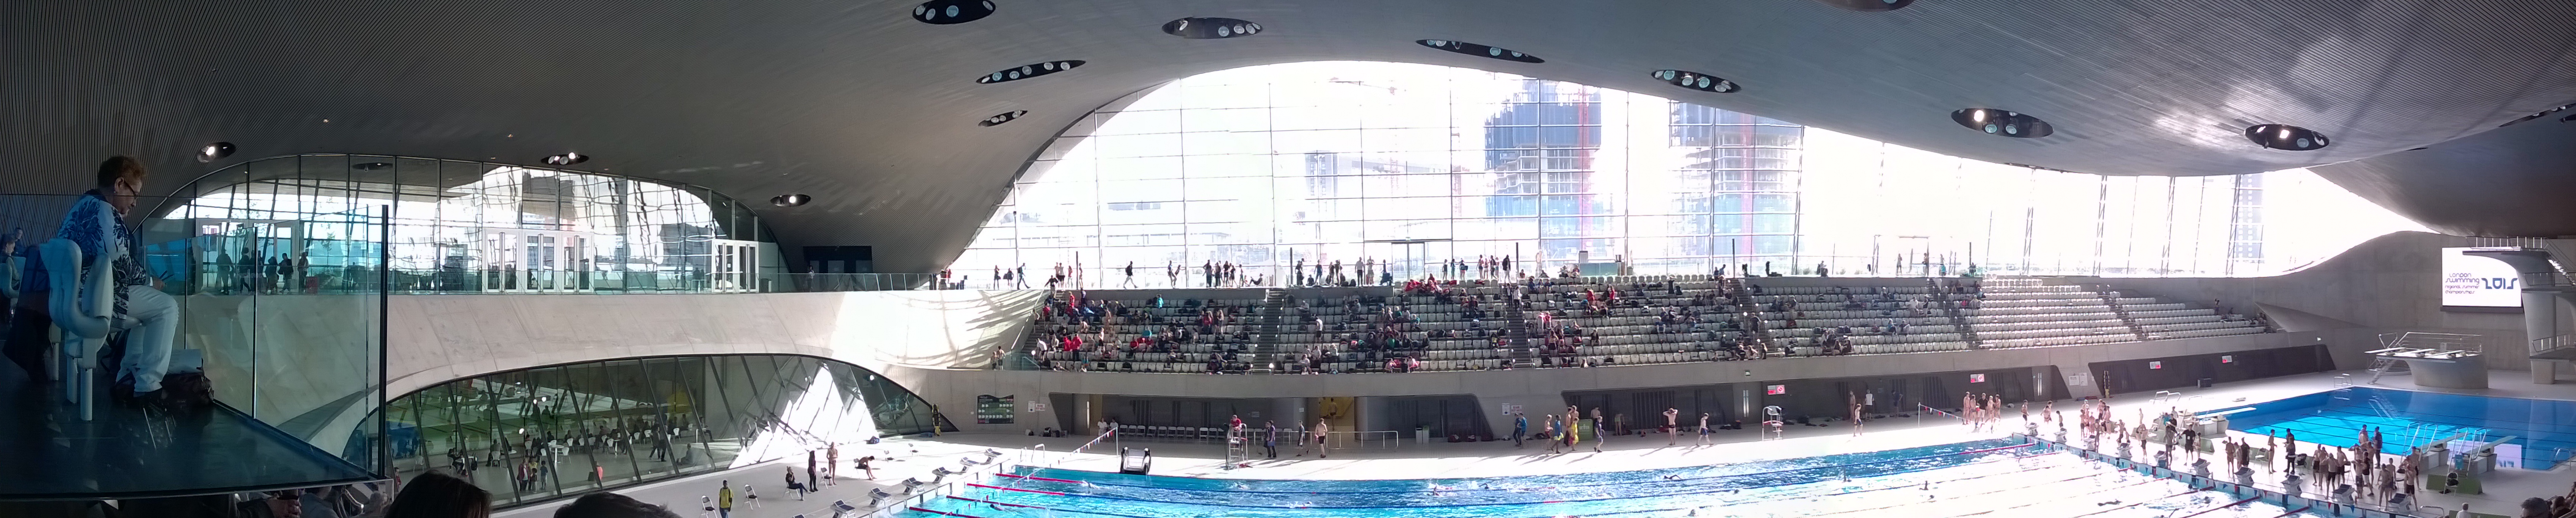 London aquatic centre panorama (3).jpg